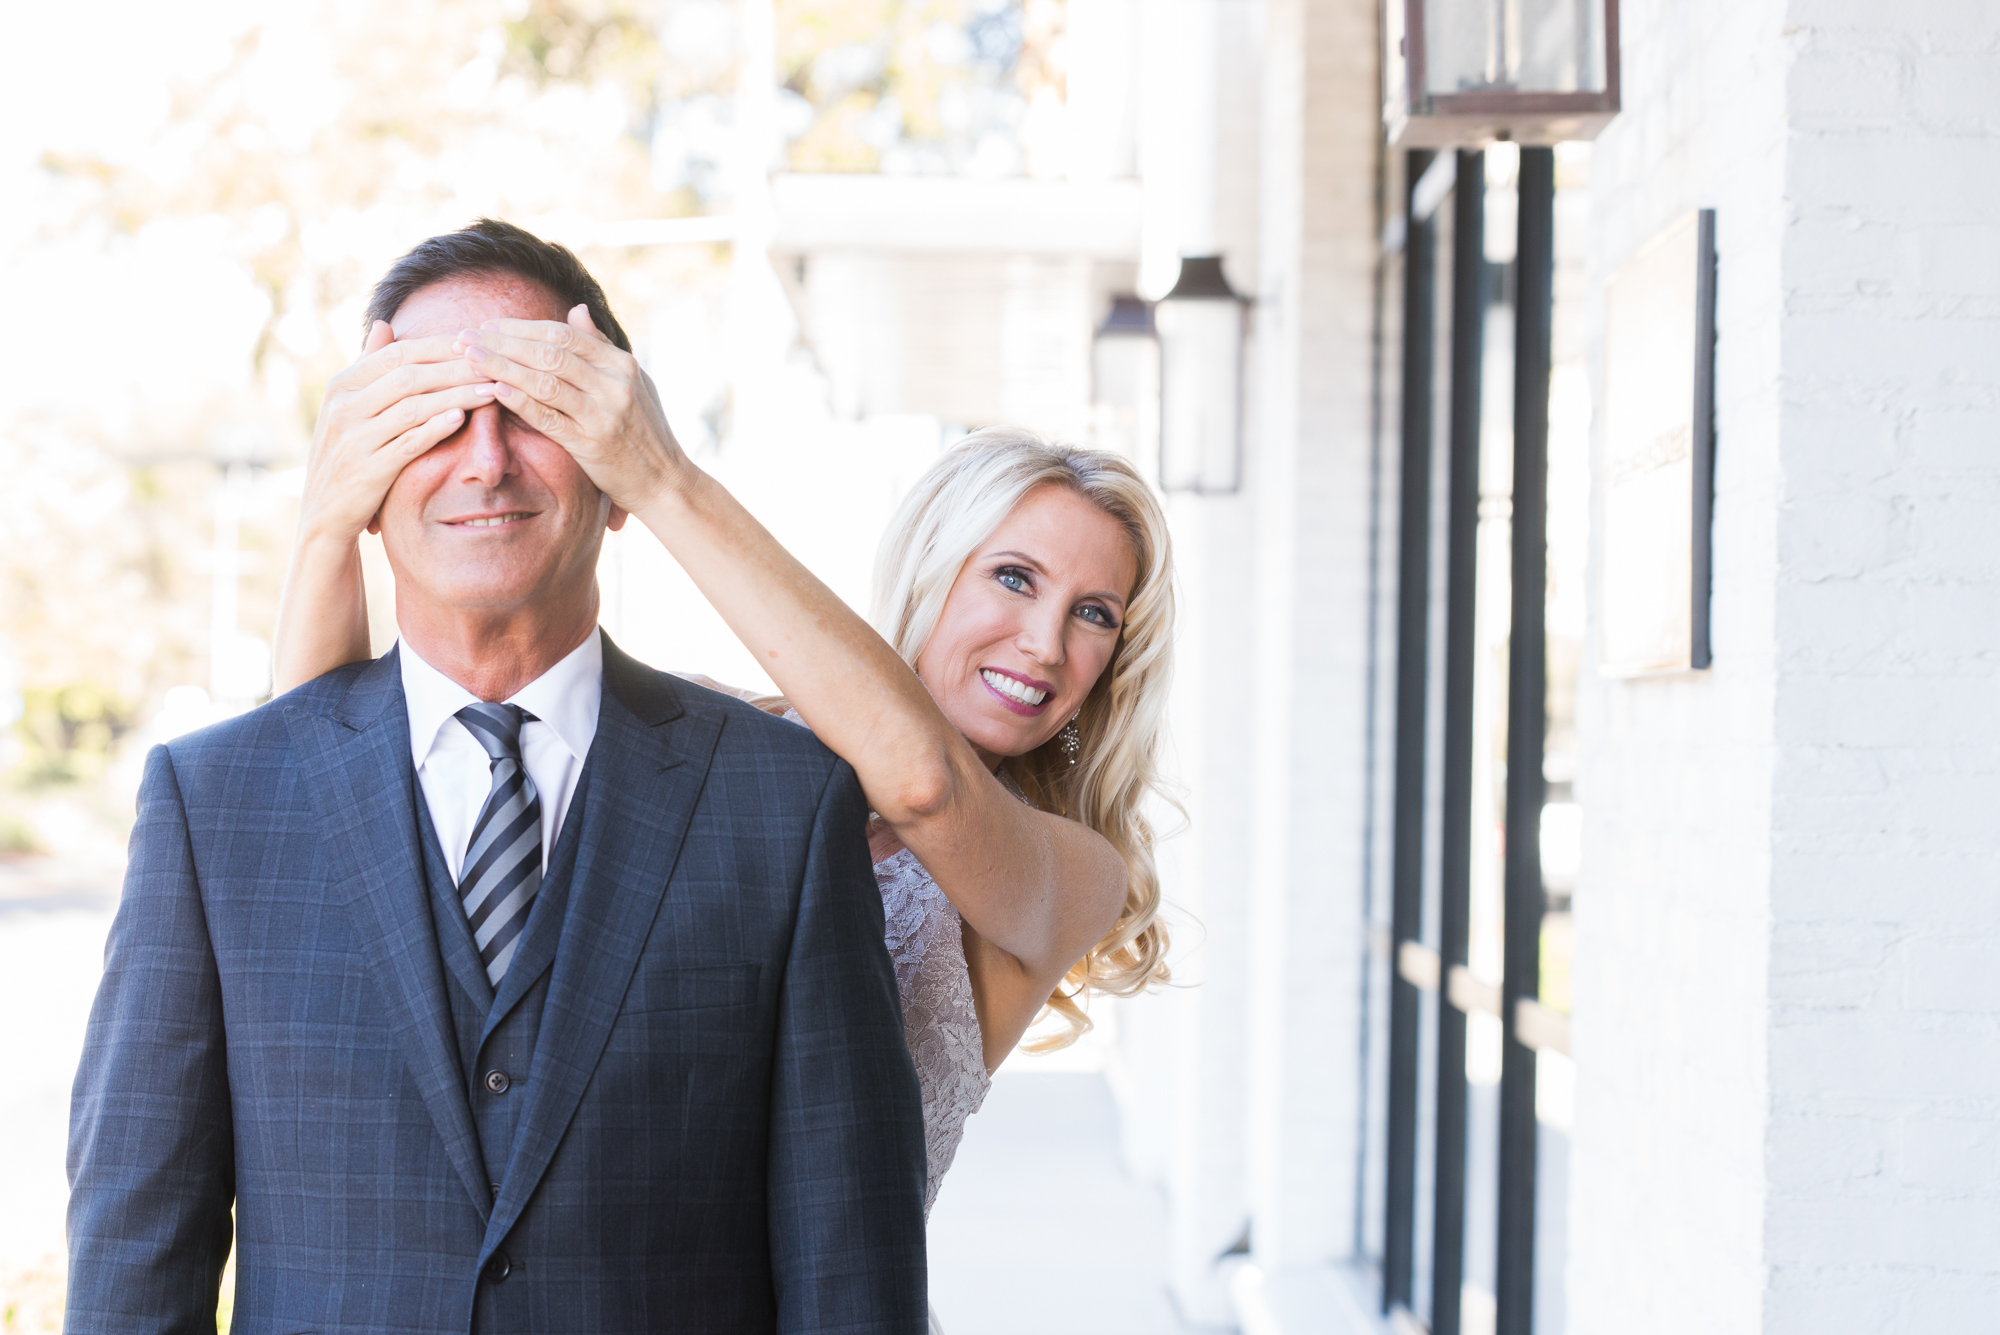 Oxford-Exchange-first-look, Tampa-wedding-photography